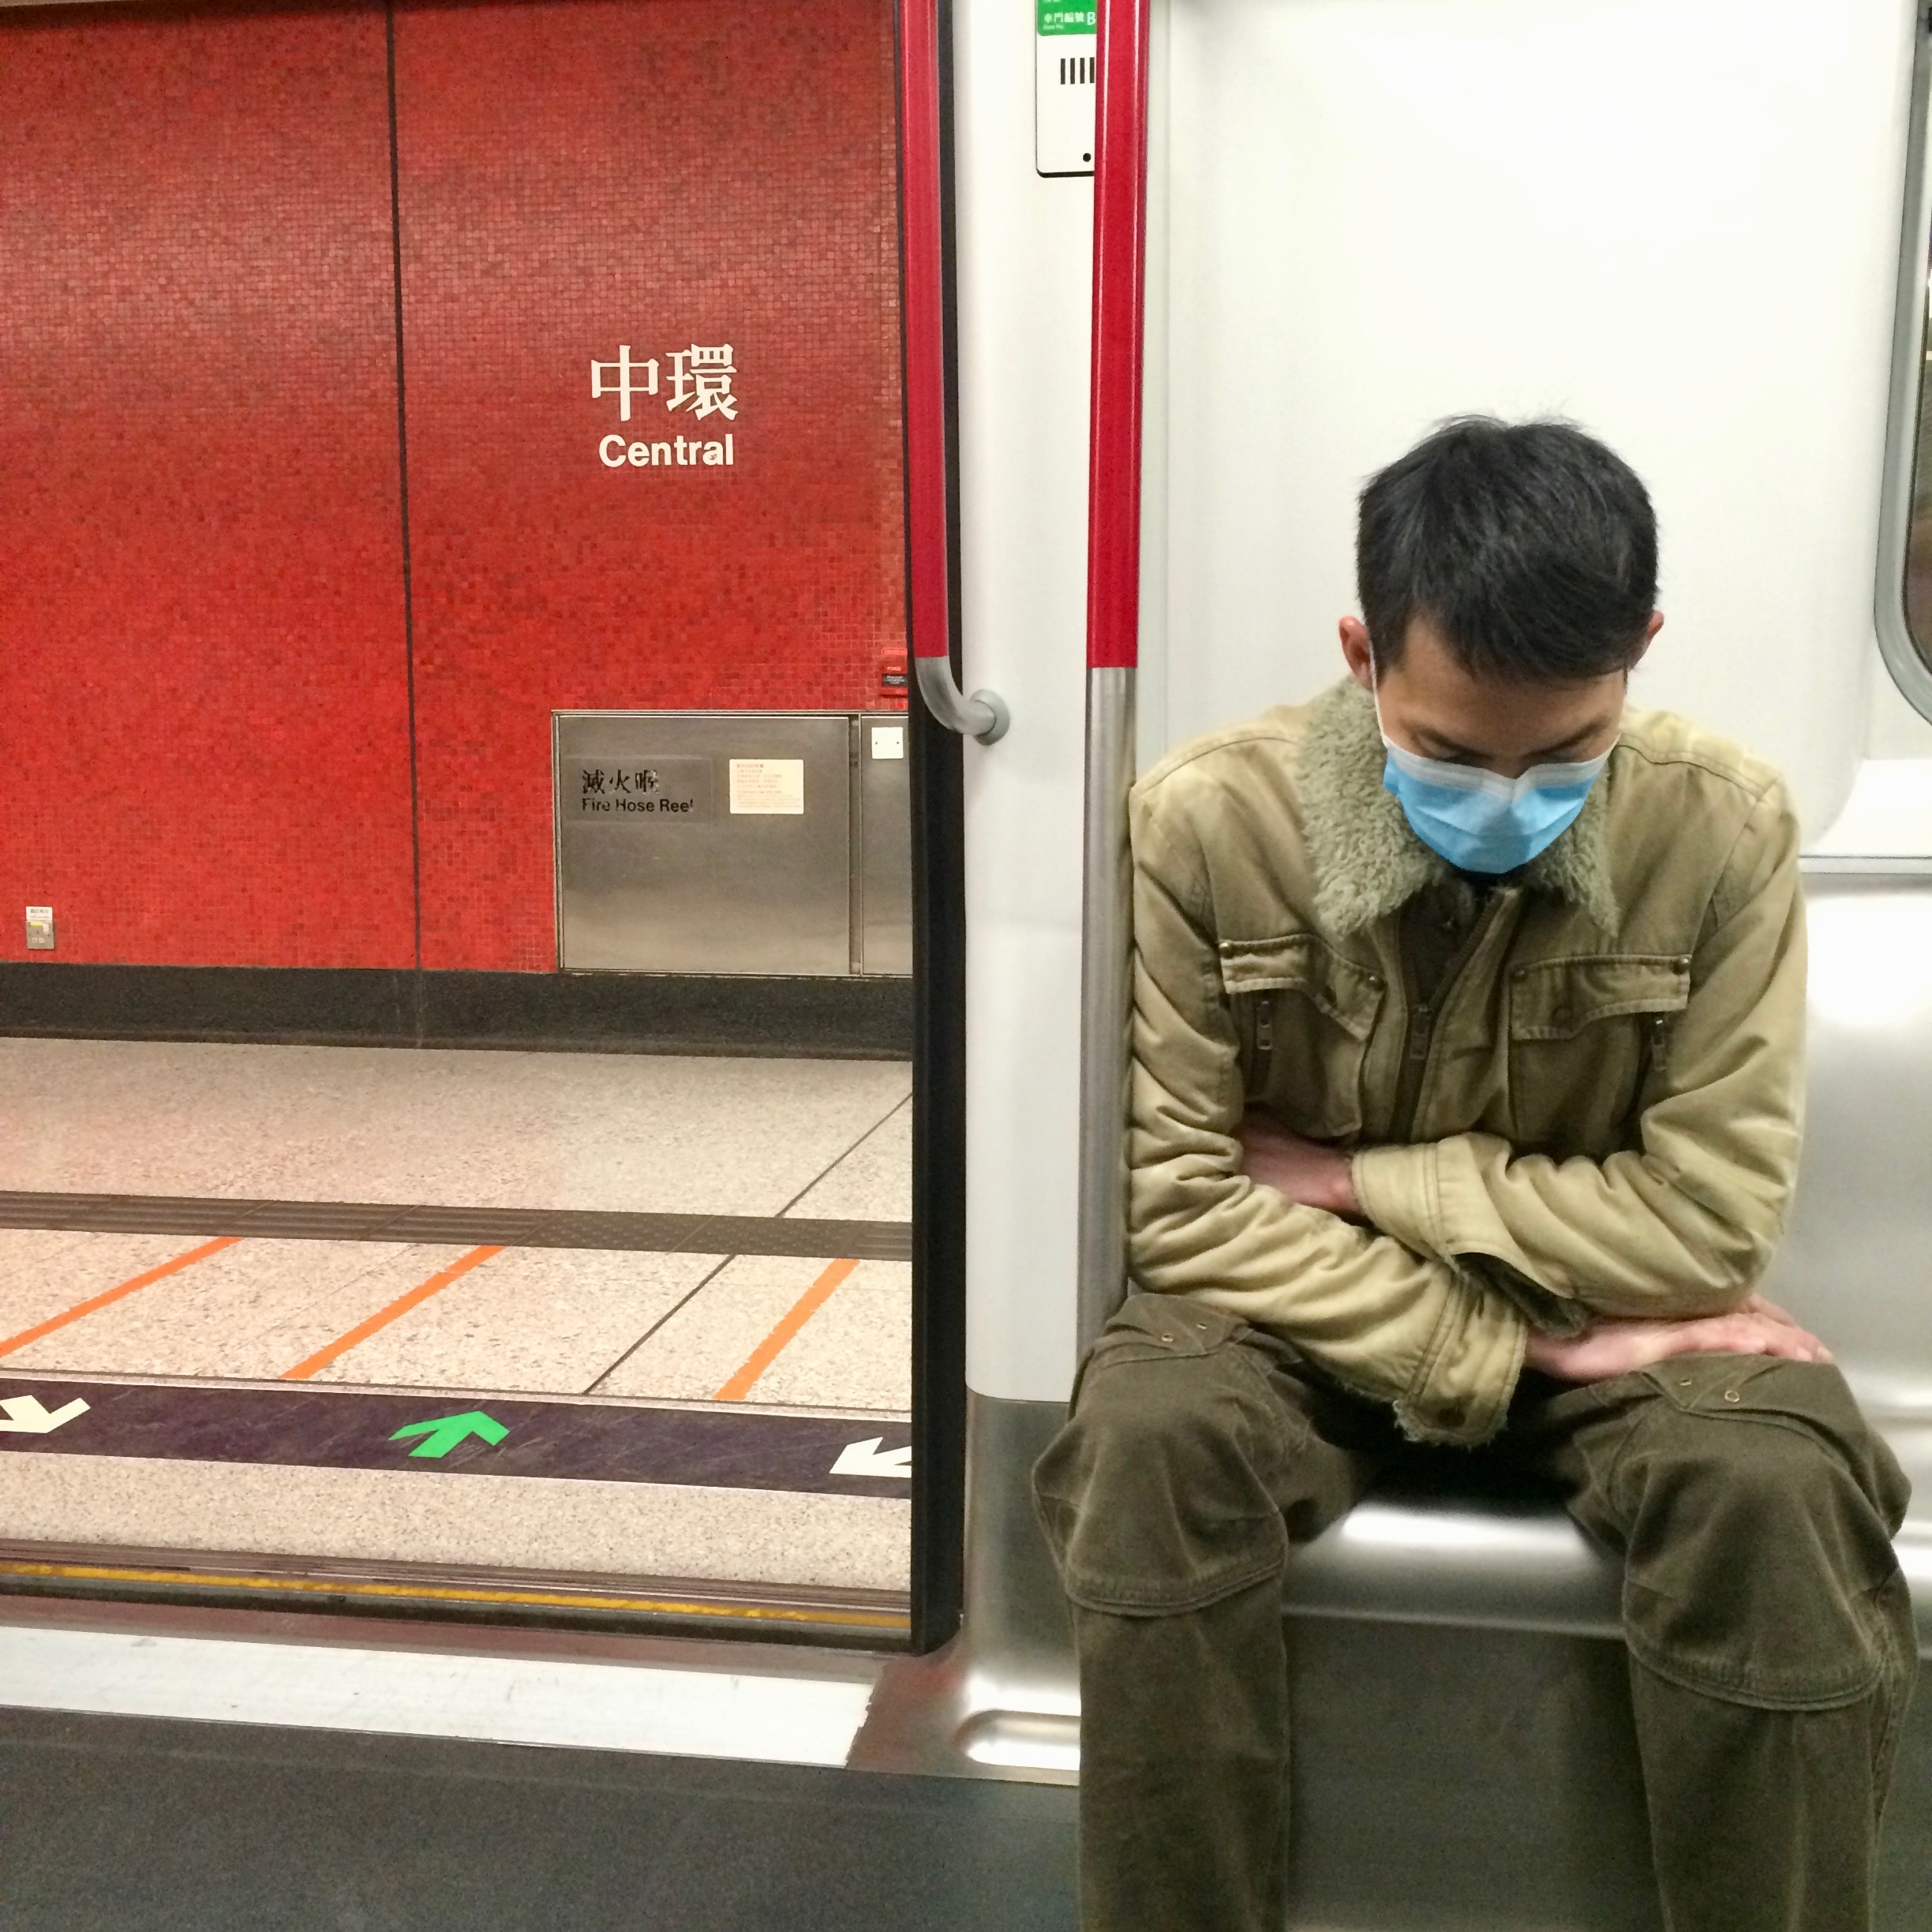 A passenger on the Tsuen Wan Line of the Hong Kong metro. Photo: (C) Remko Tanis